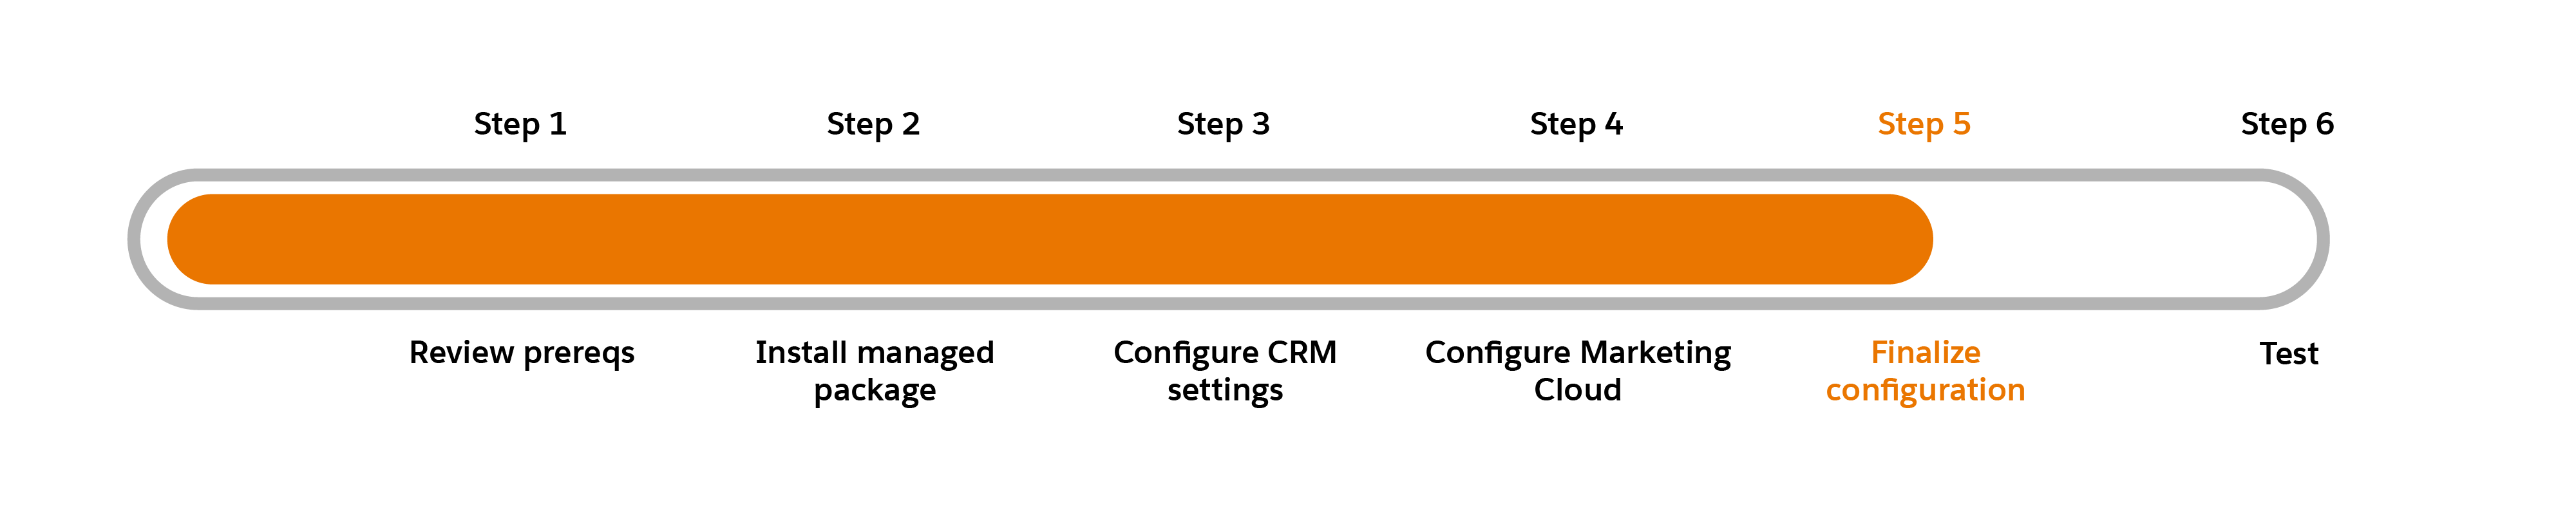 Progress chart with Step 5: Finalize configuration highlighted.